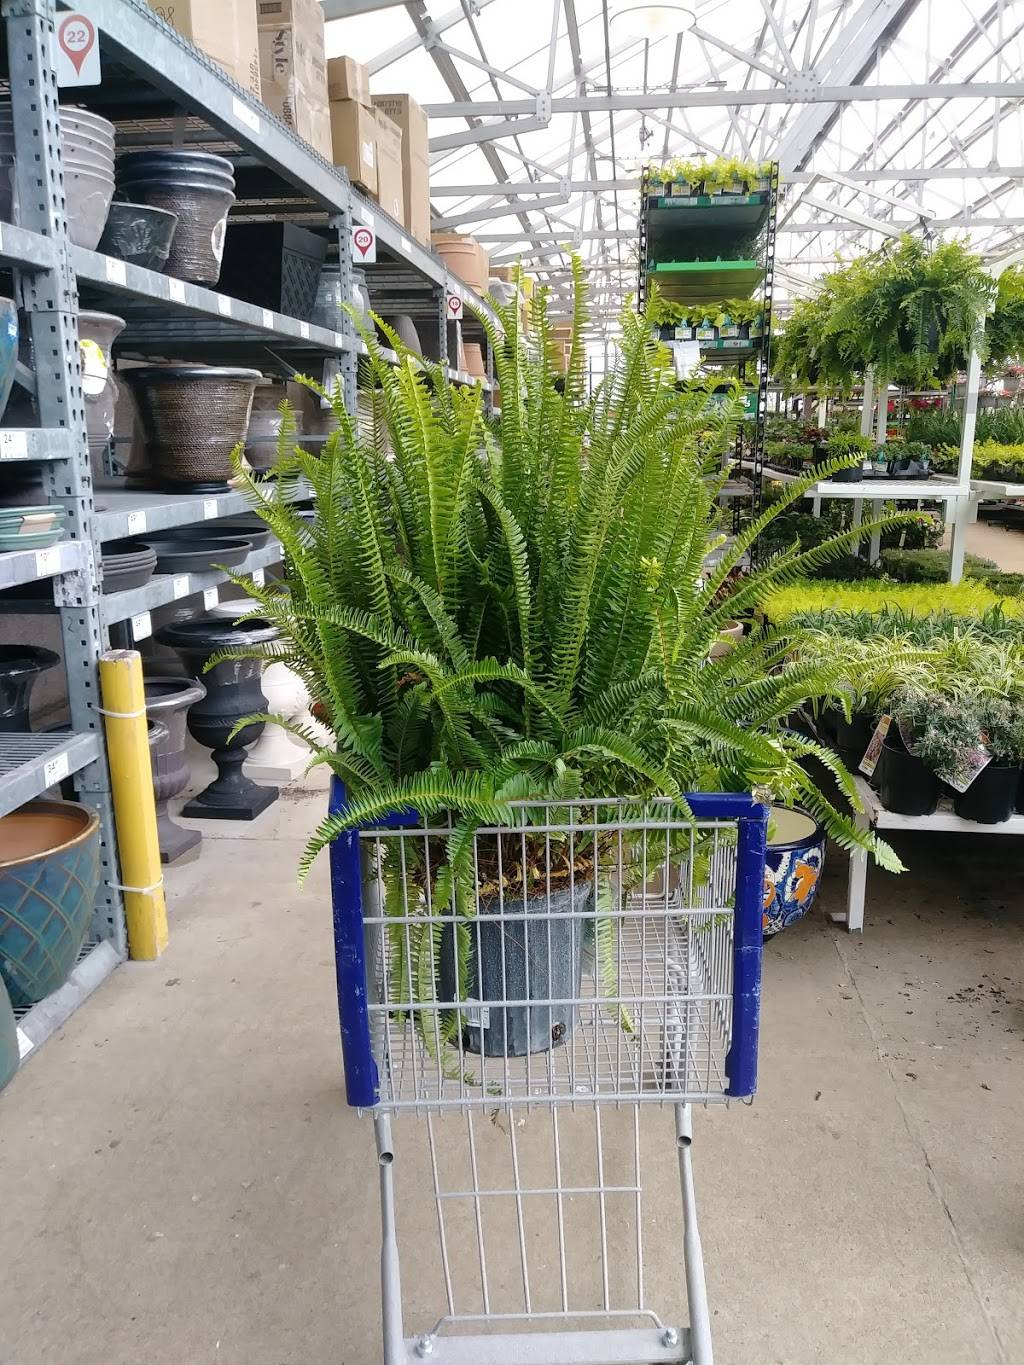 Lowes Home Improvement - hardware store    Photo 8 of 8   Address: 21000 West Rd, Woodhaven, MI 48183, USA   Phone: (734) 365-0034